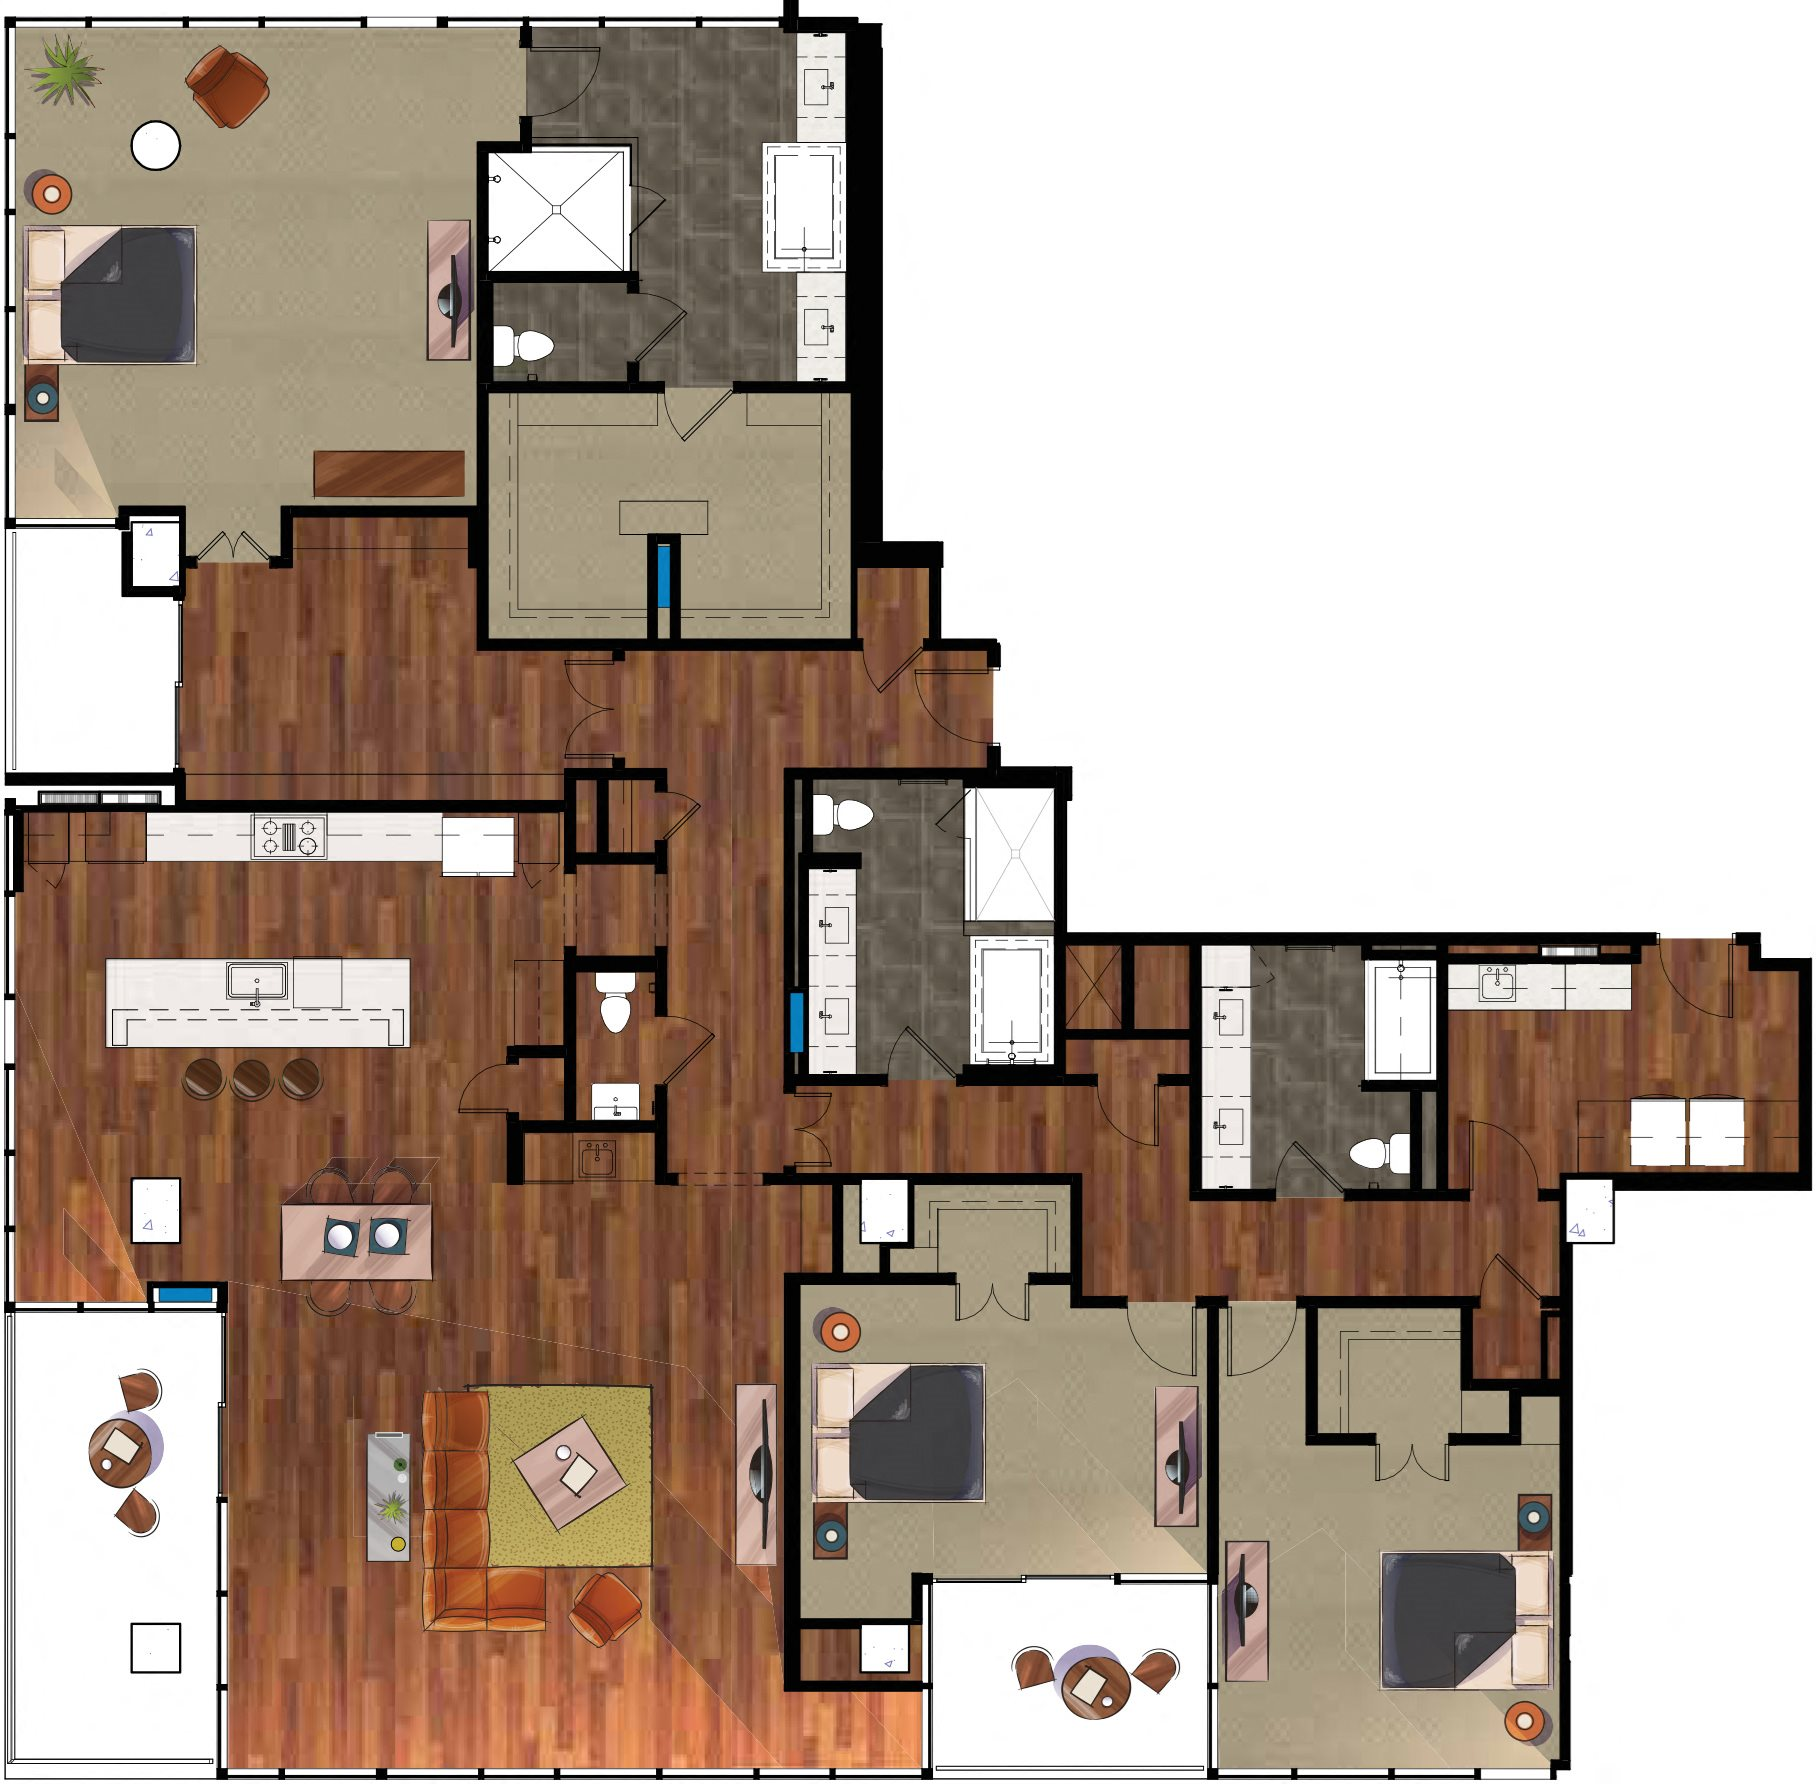 P9 Penthouse Apartment